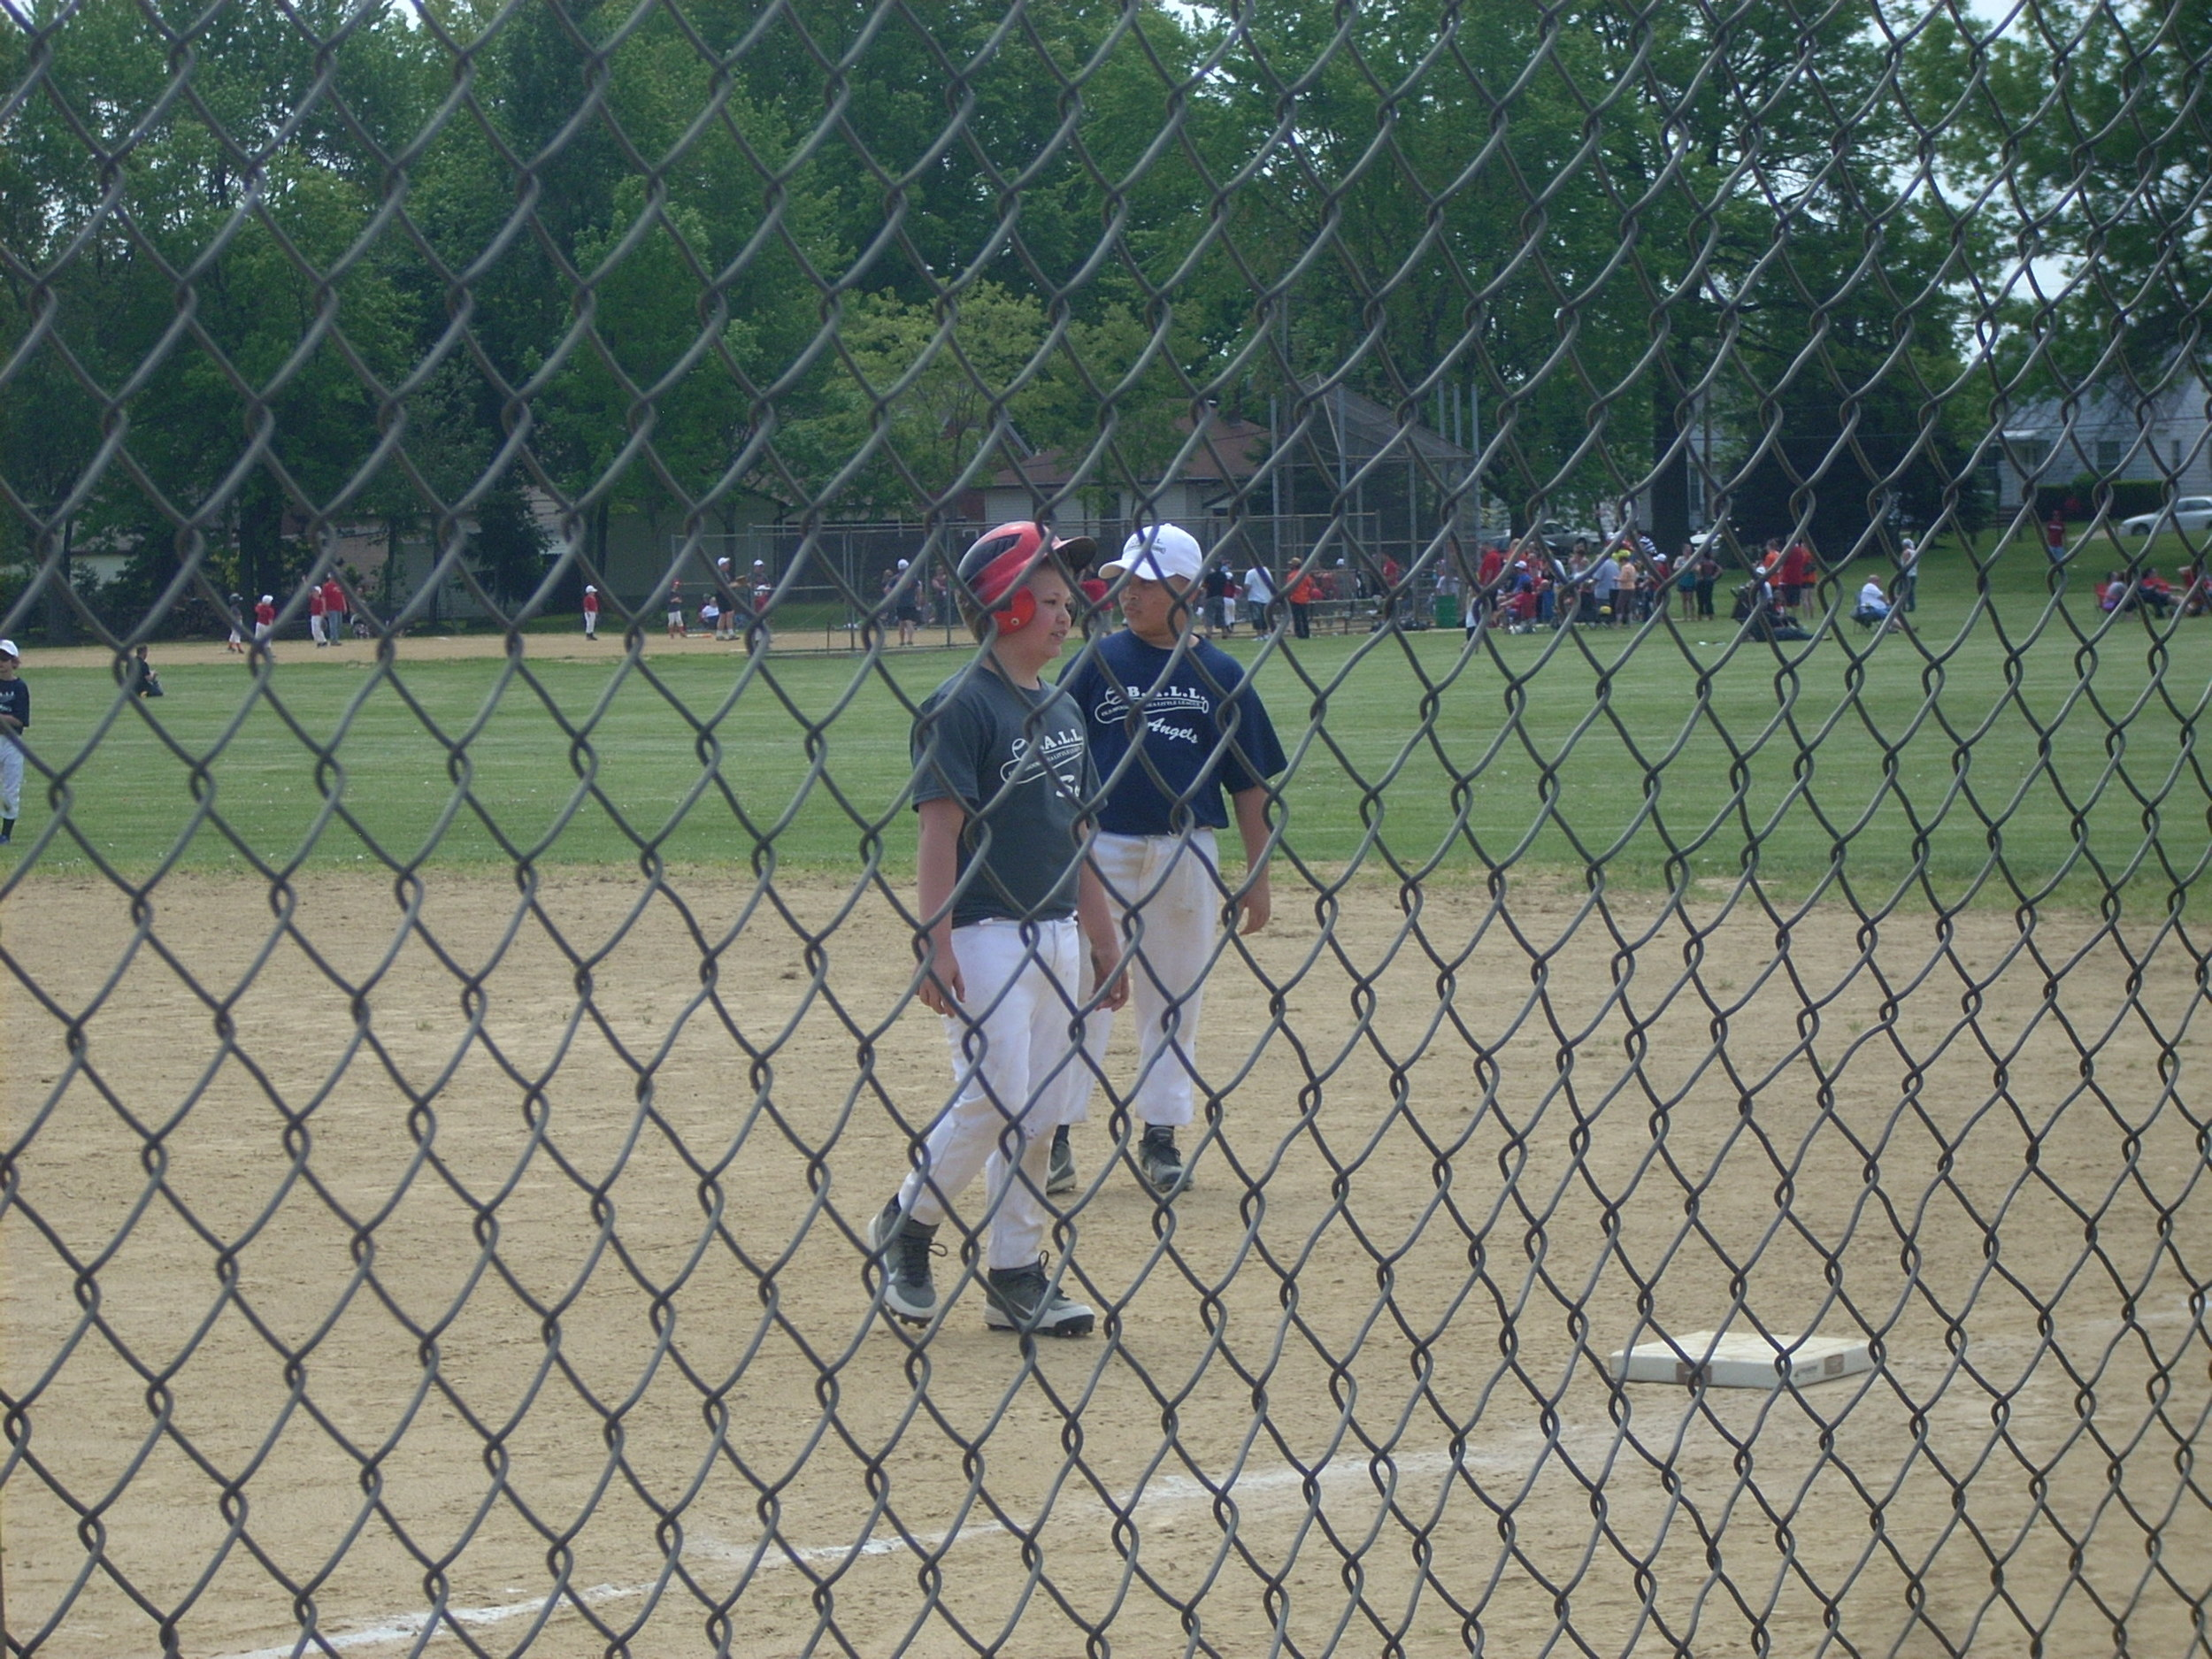 2013-OBALL-pictures-006.jpg